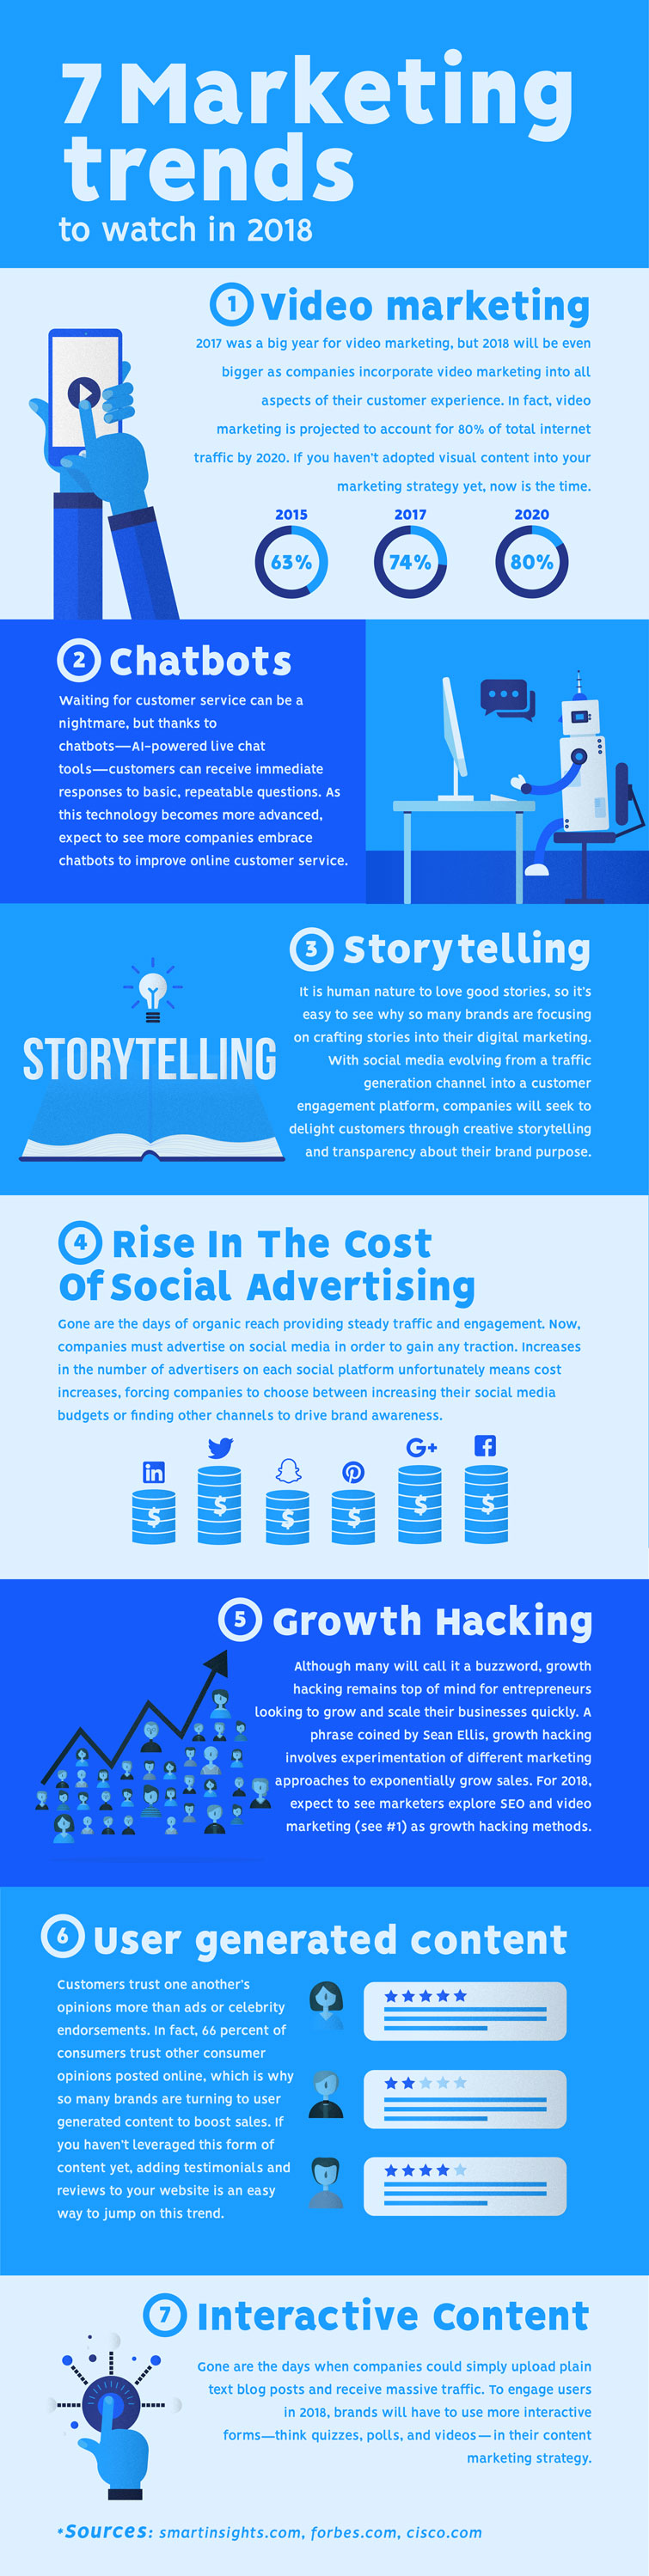 7 Digital Marketing Trends to Watch in 2018 (Infographic)